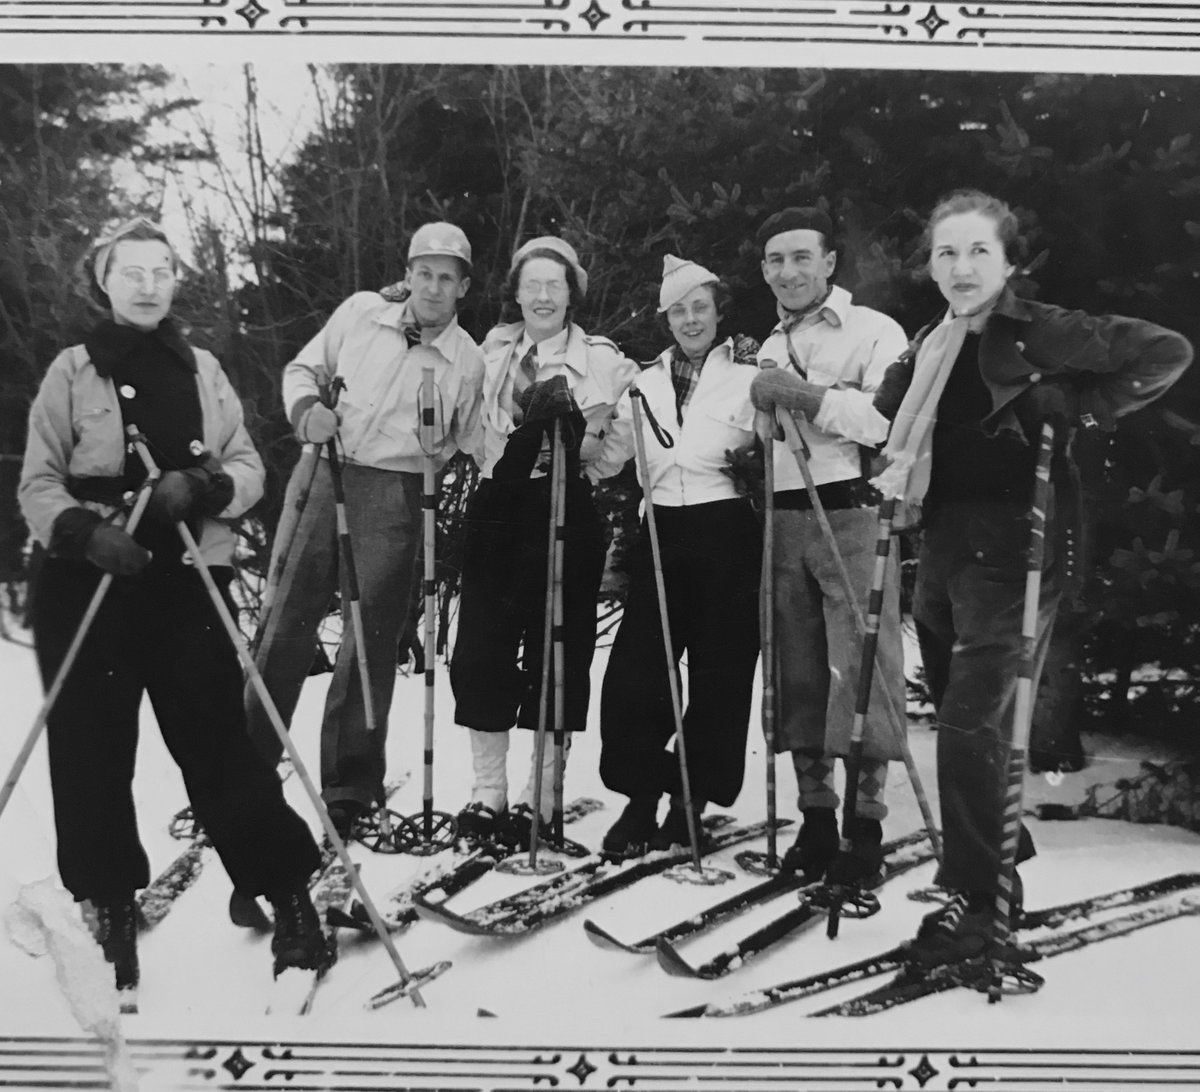 'Skiing in the Laurentians circa 1930's' #skiing #fashion #blackandwhite #blackandwhitephotography #blackandwhitephotos #photo #Photos #photographers #photography #photographylovers